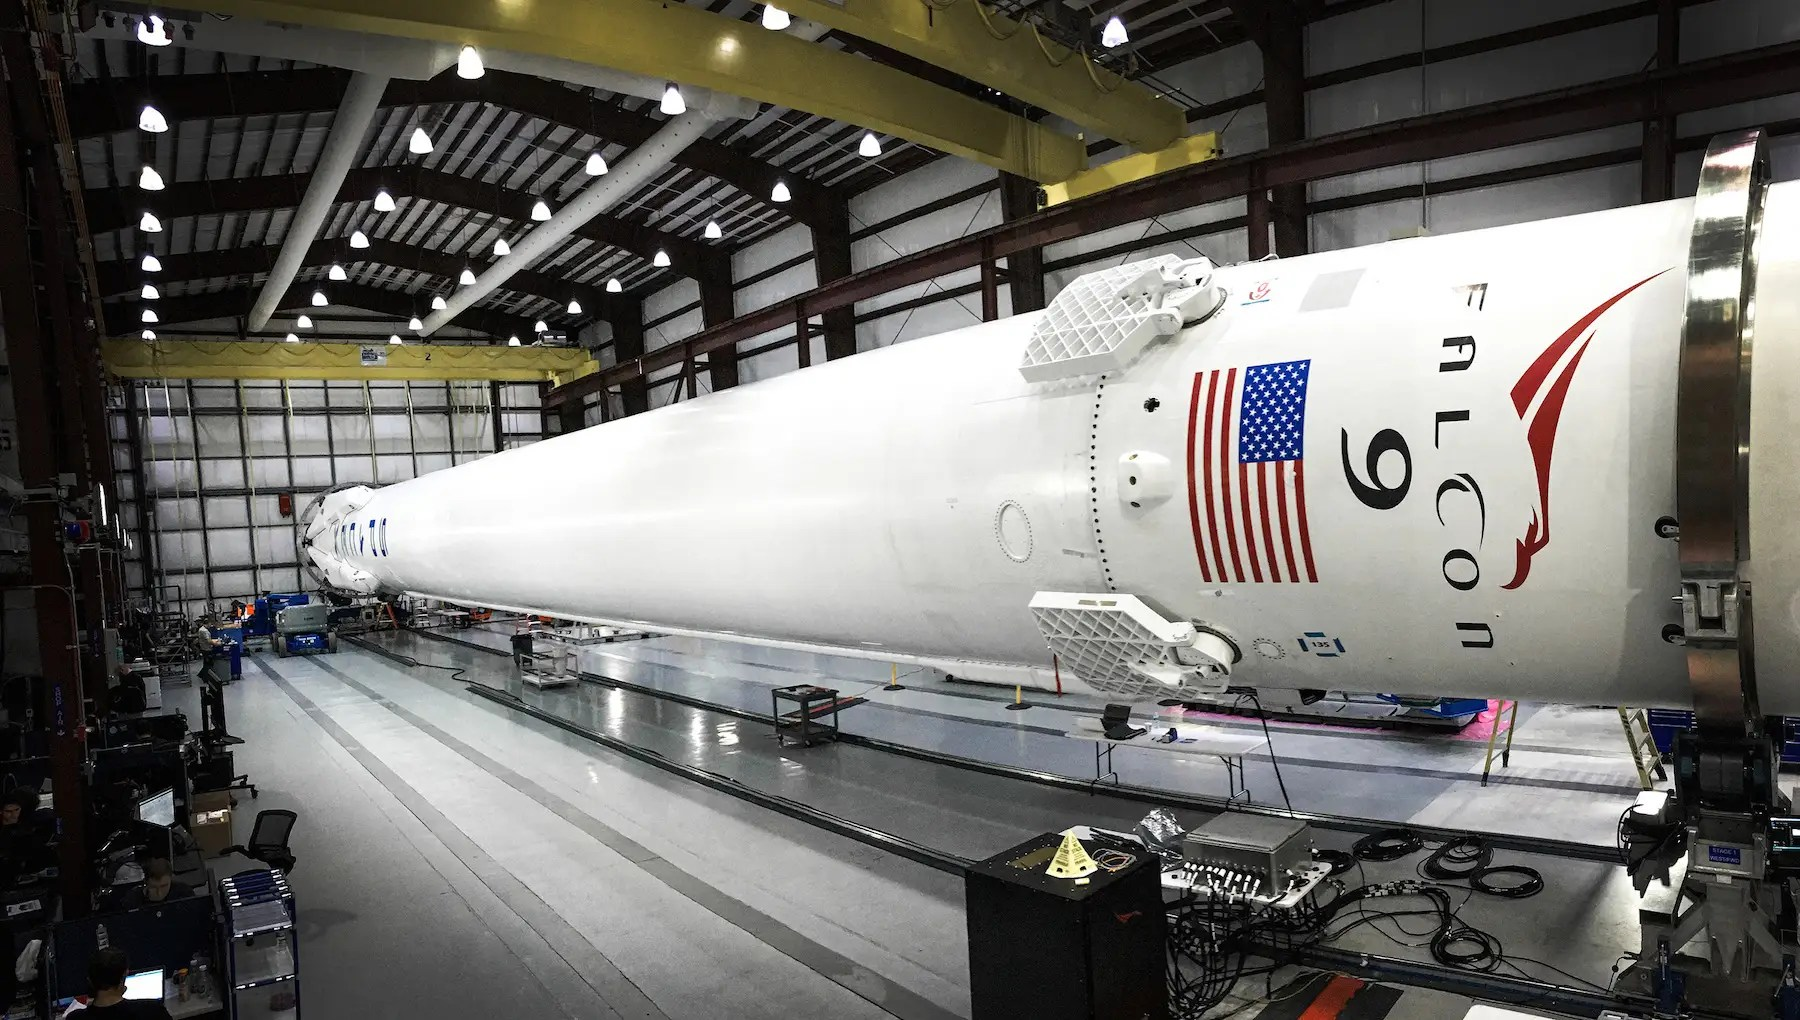 SpaceX's first vehicles were the Falcon 1 and 9 rockets, named after the Millennium Falcon of Star Wars fame...